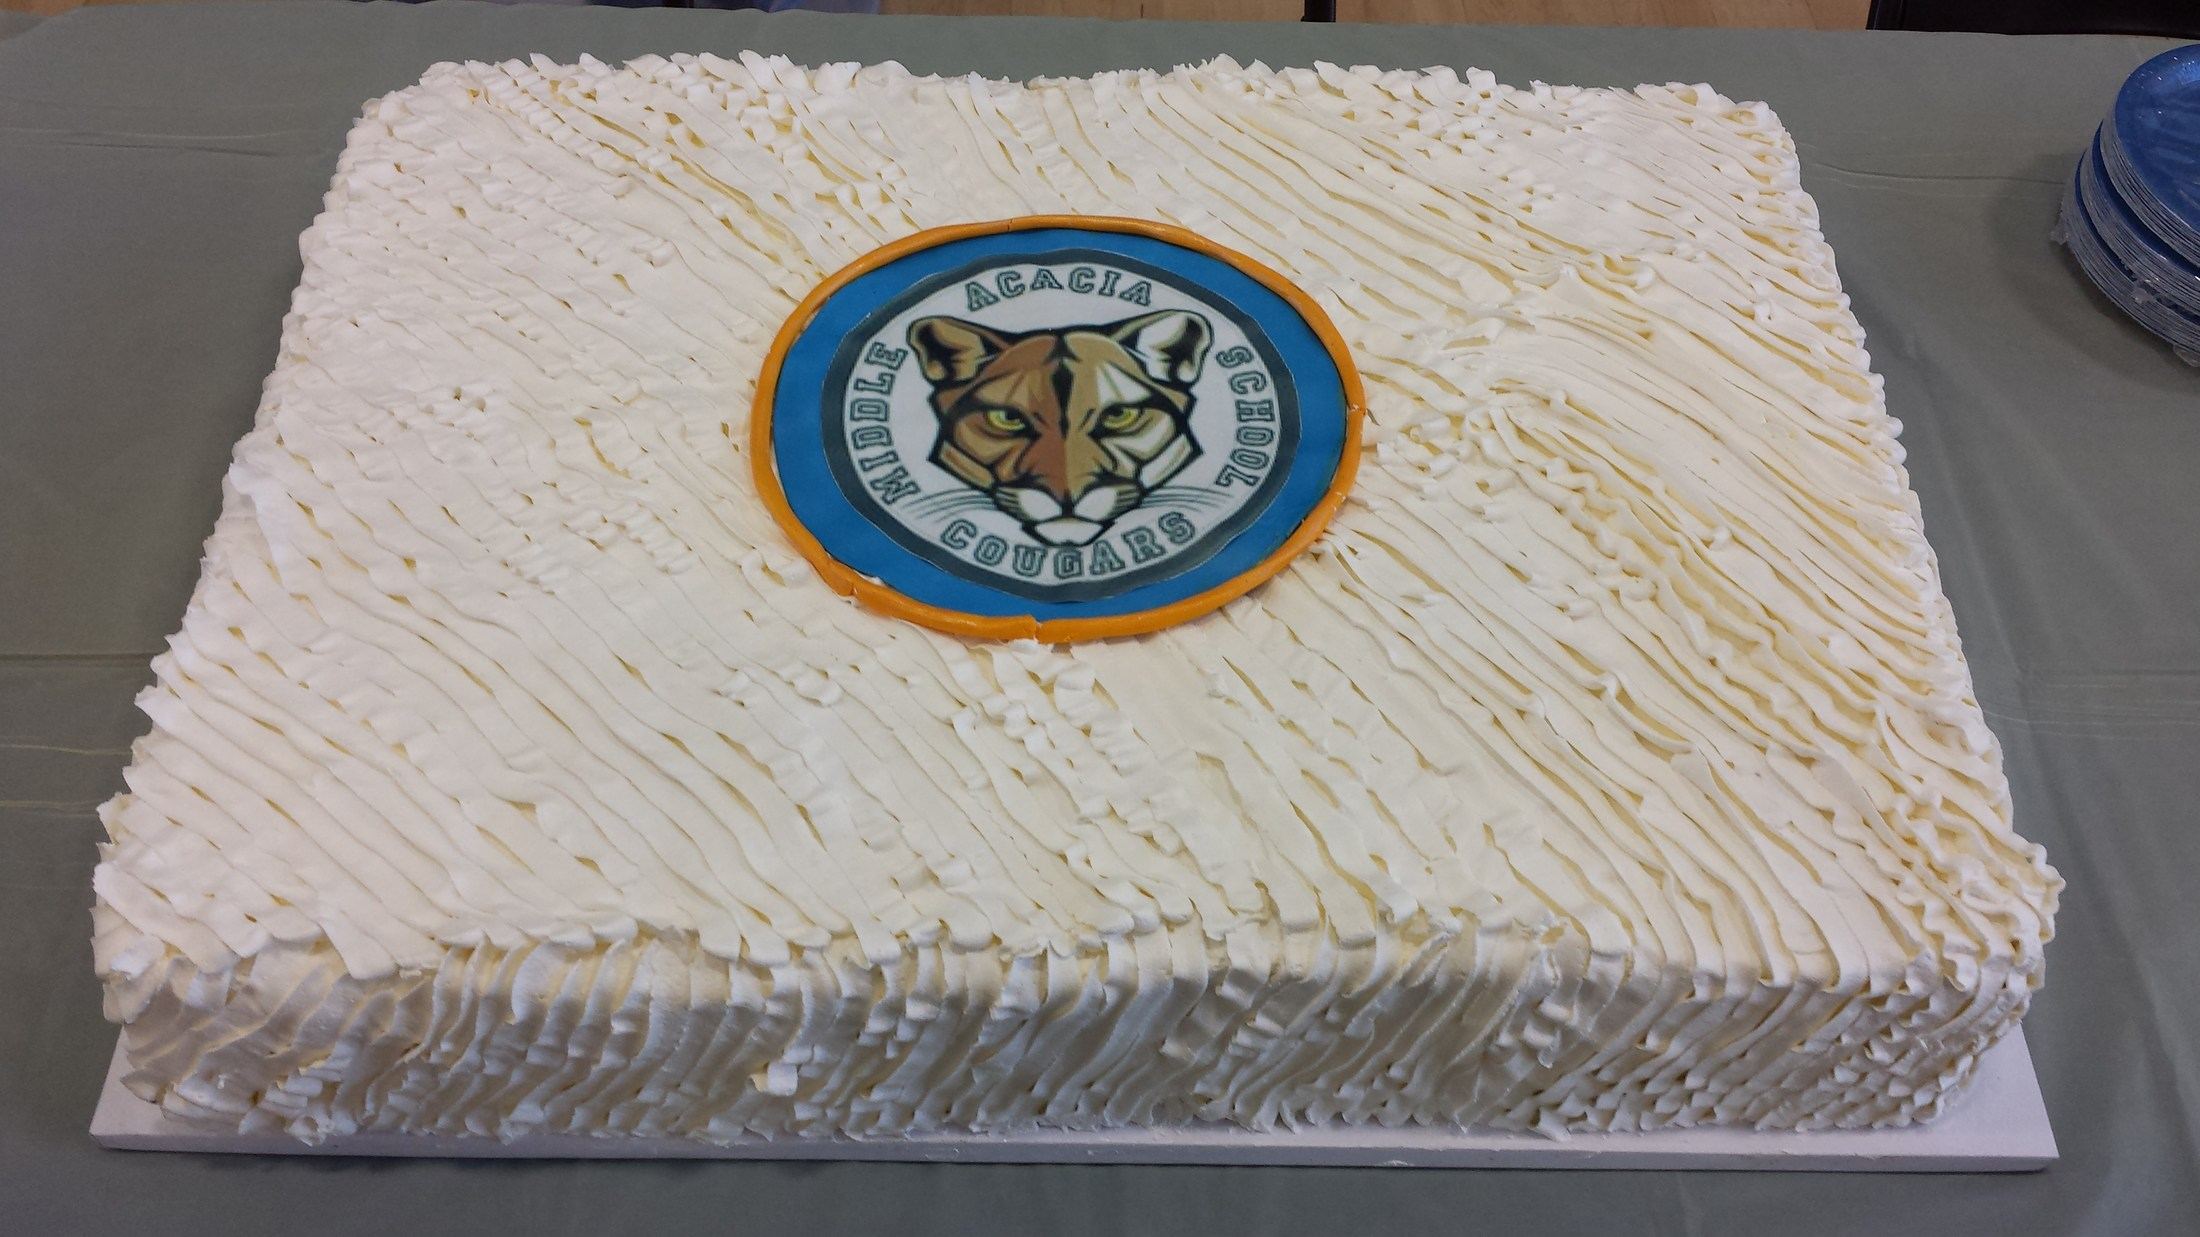 Cake provided by Nutrition Services